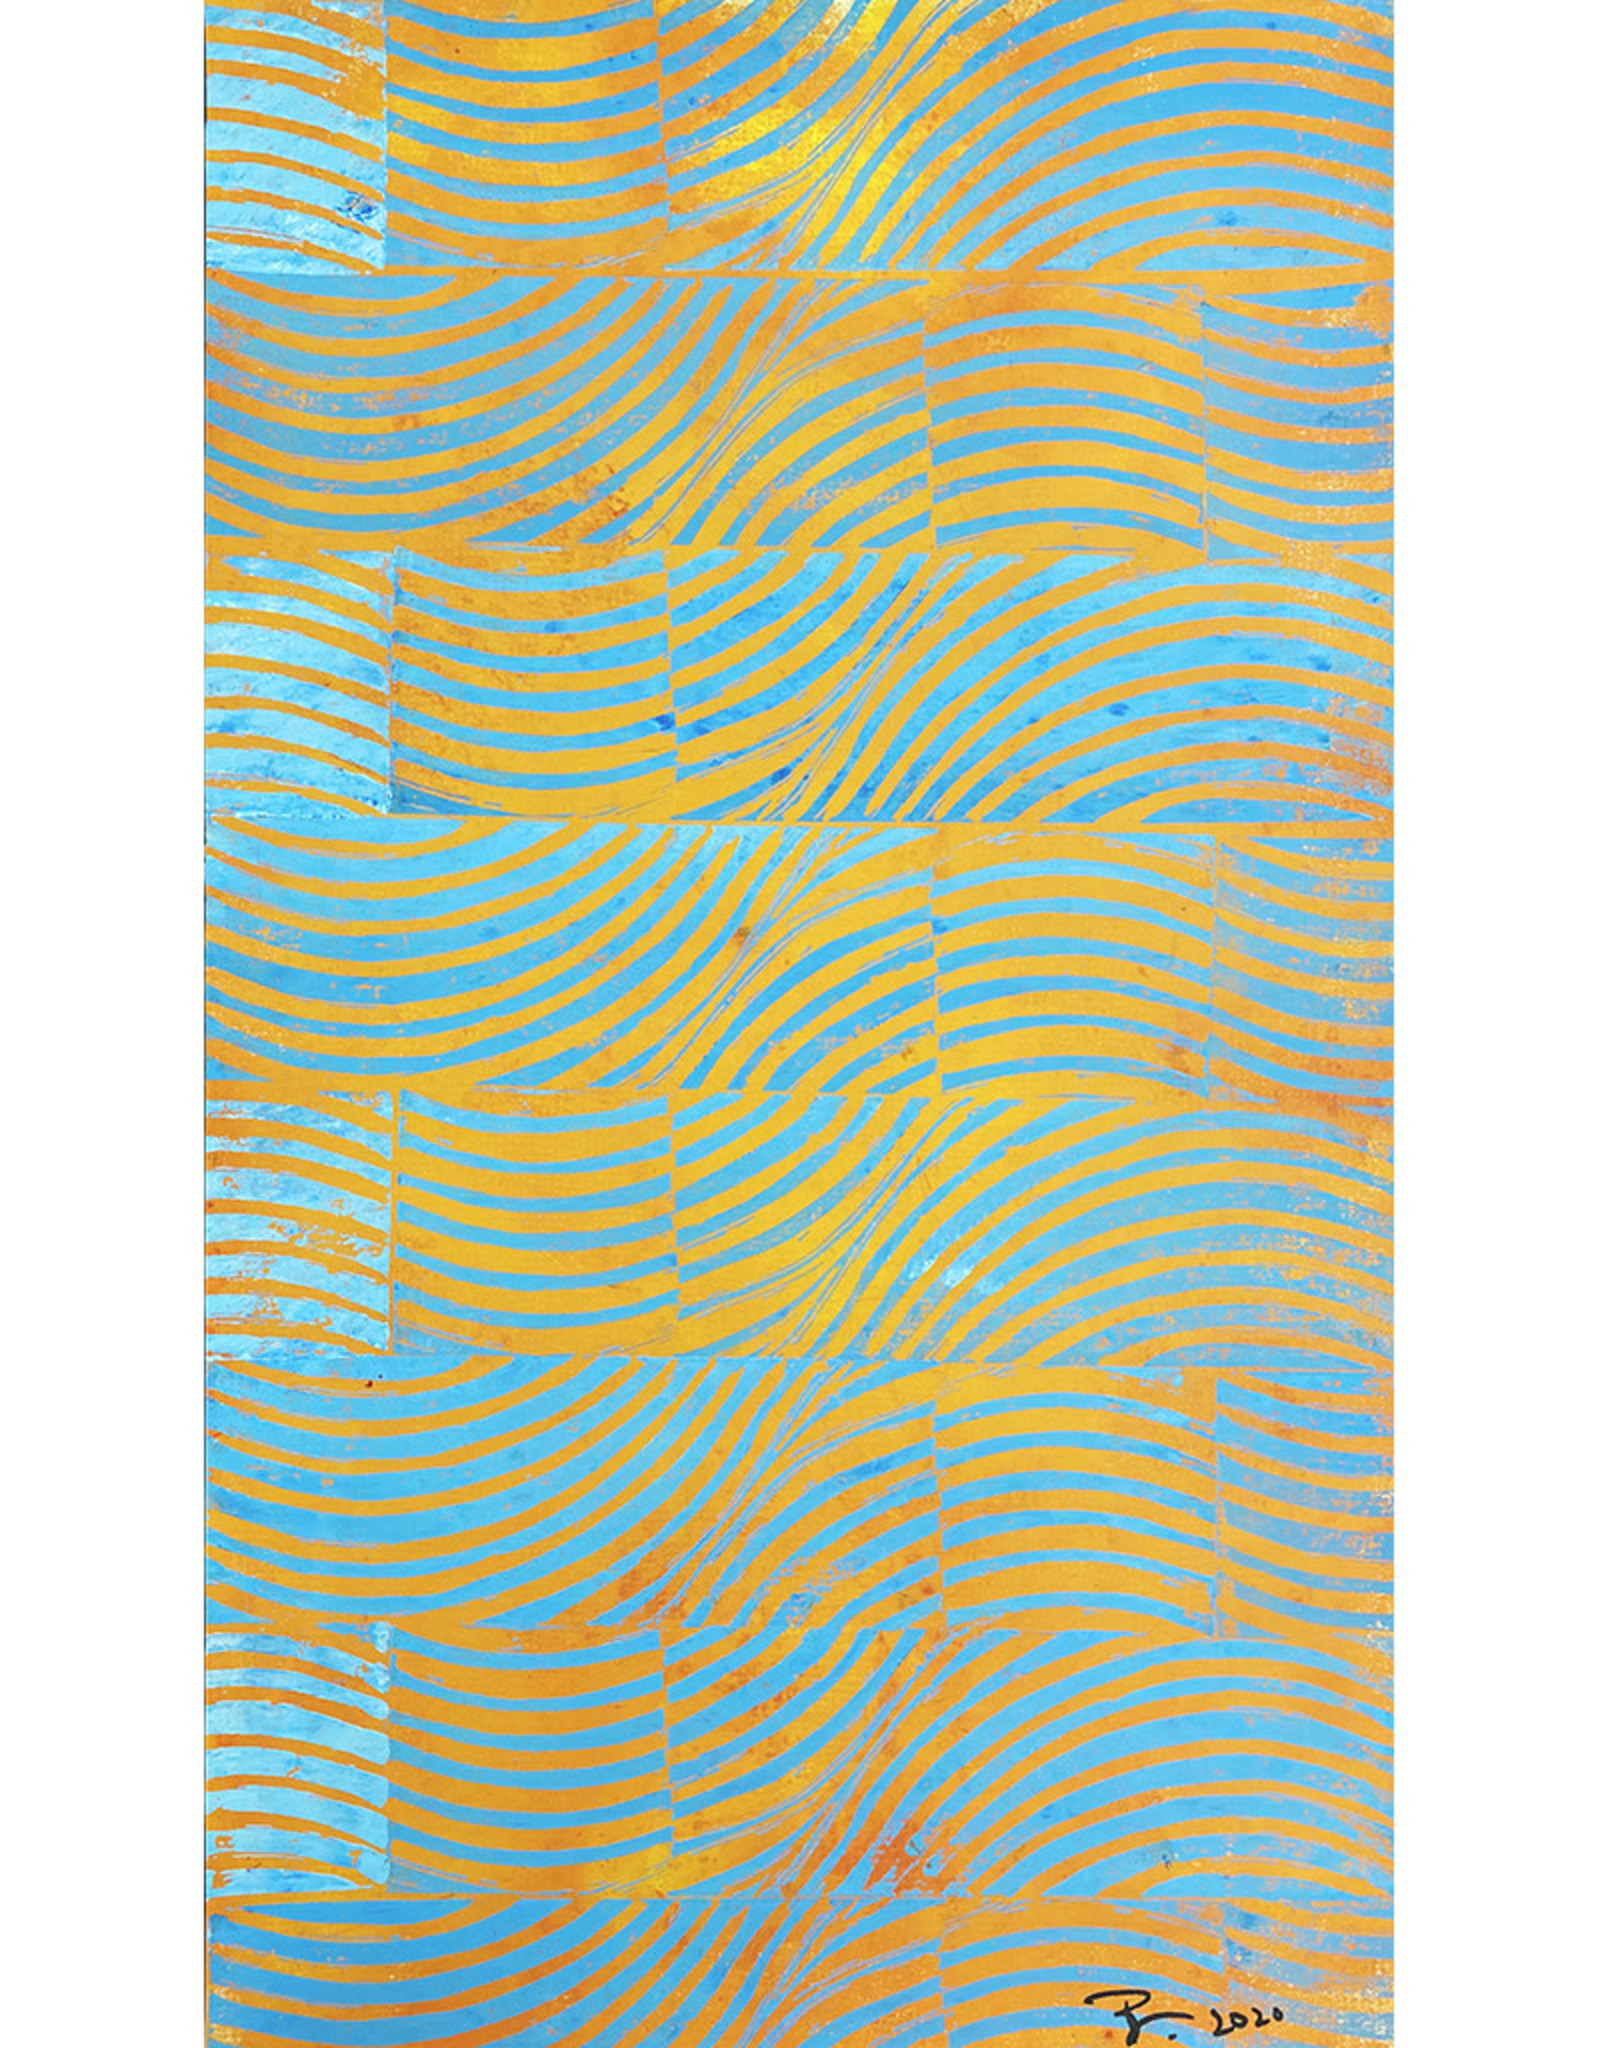 Paul Punzo Waves Wallpaper Print by Paul Punzo